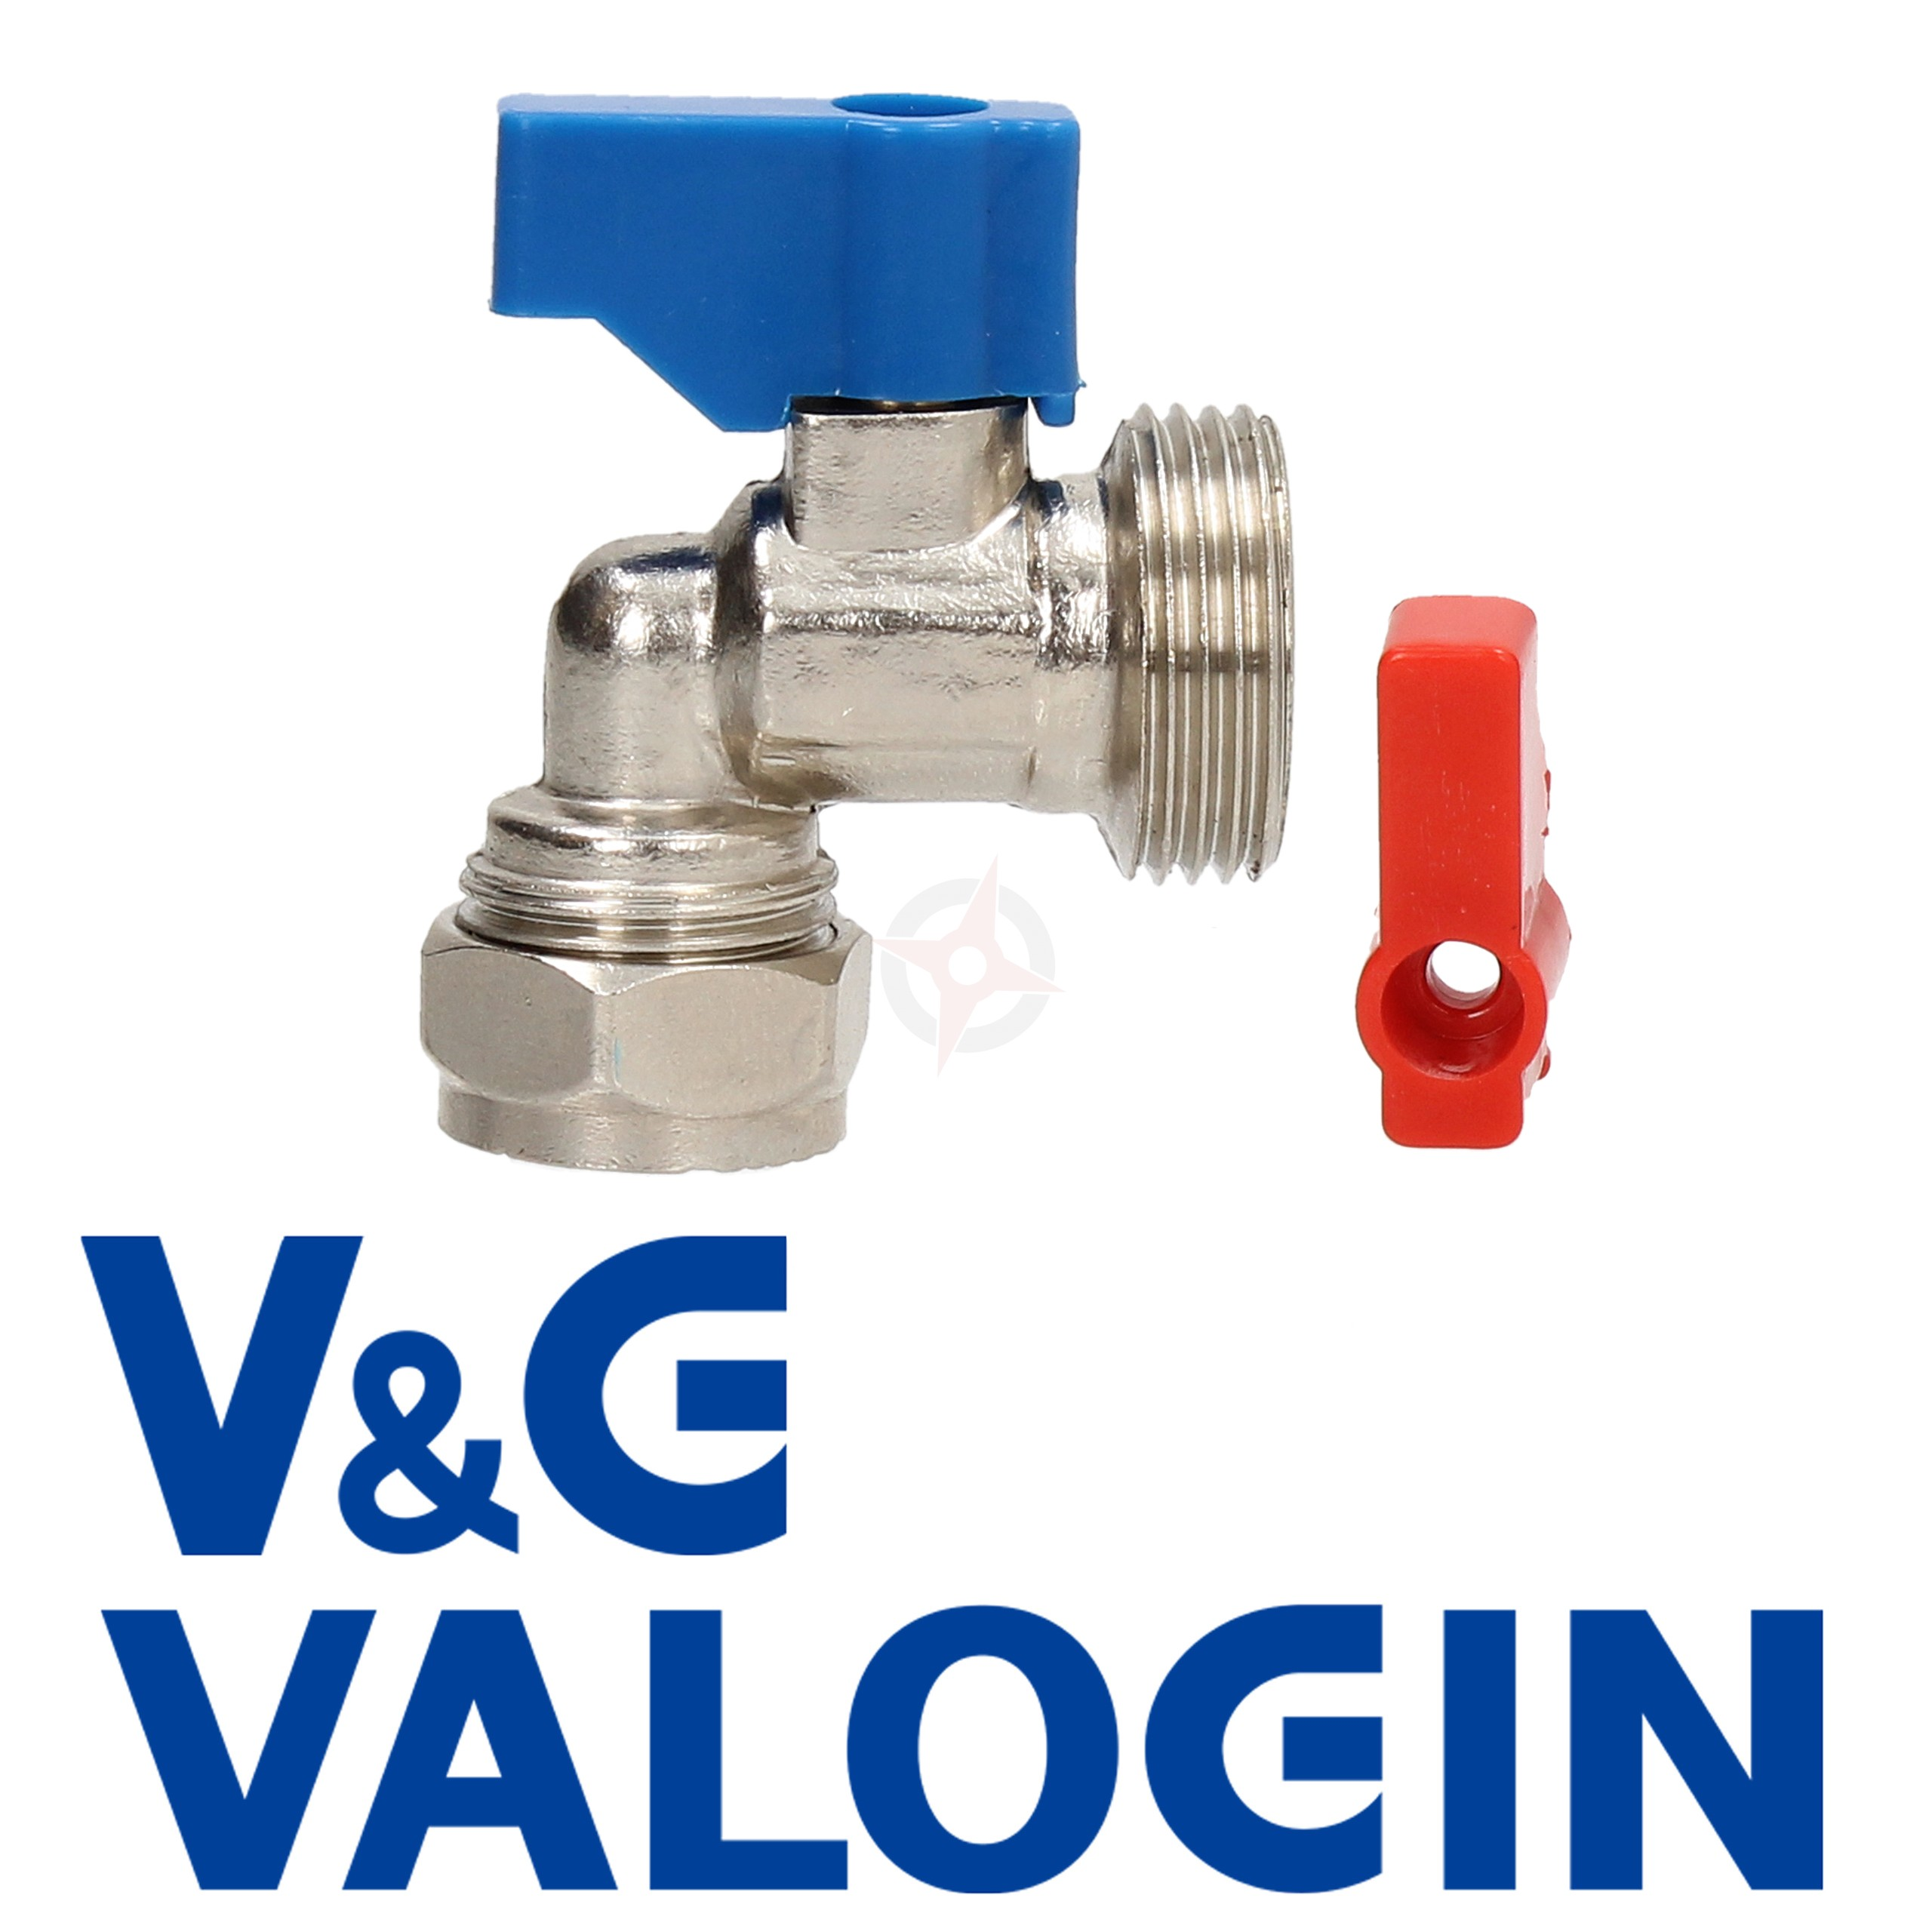 "V&G Chrome 15mm x 3/4"" Angled Washing Machine Valve"